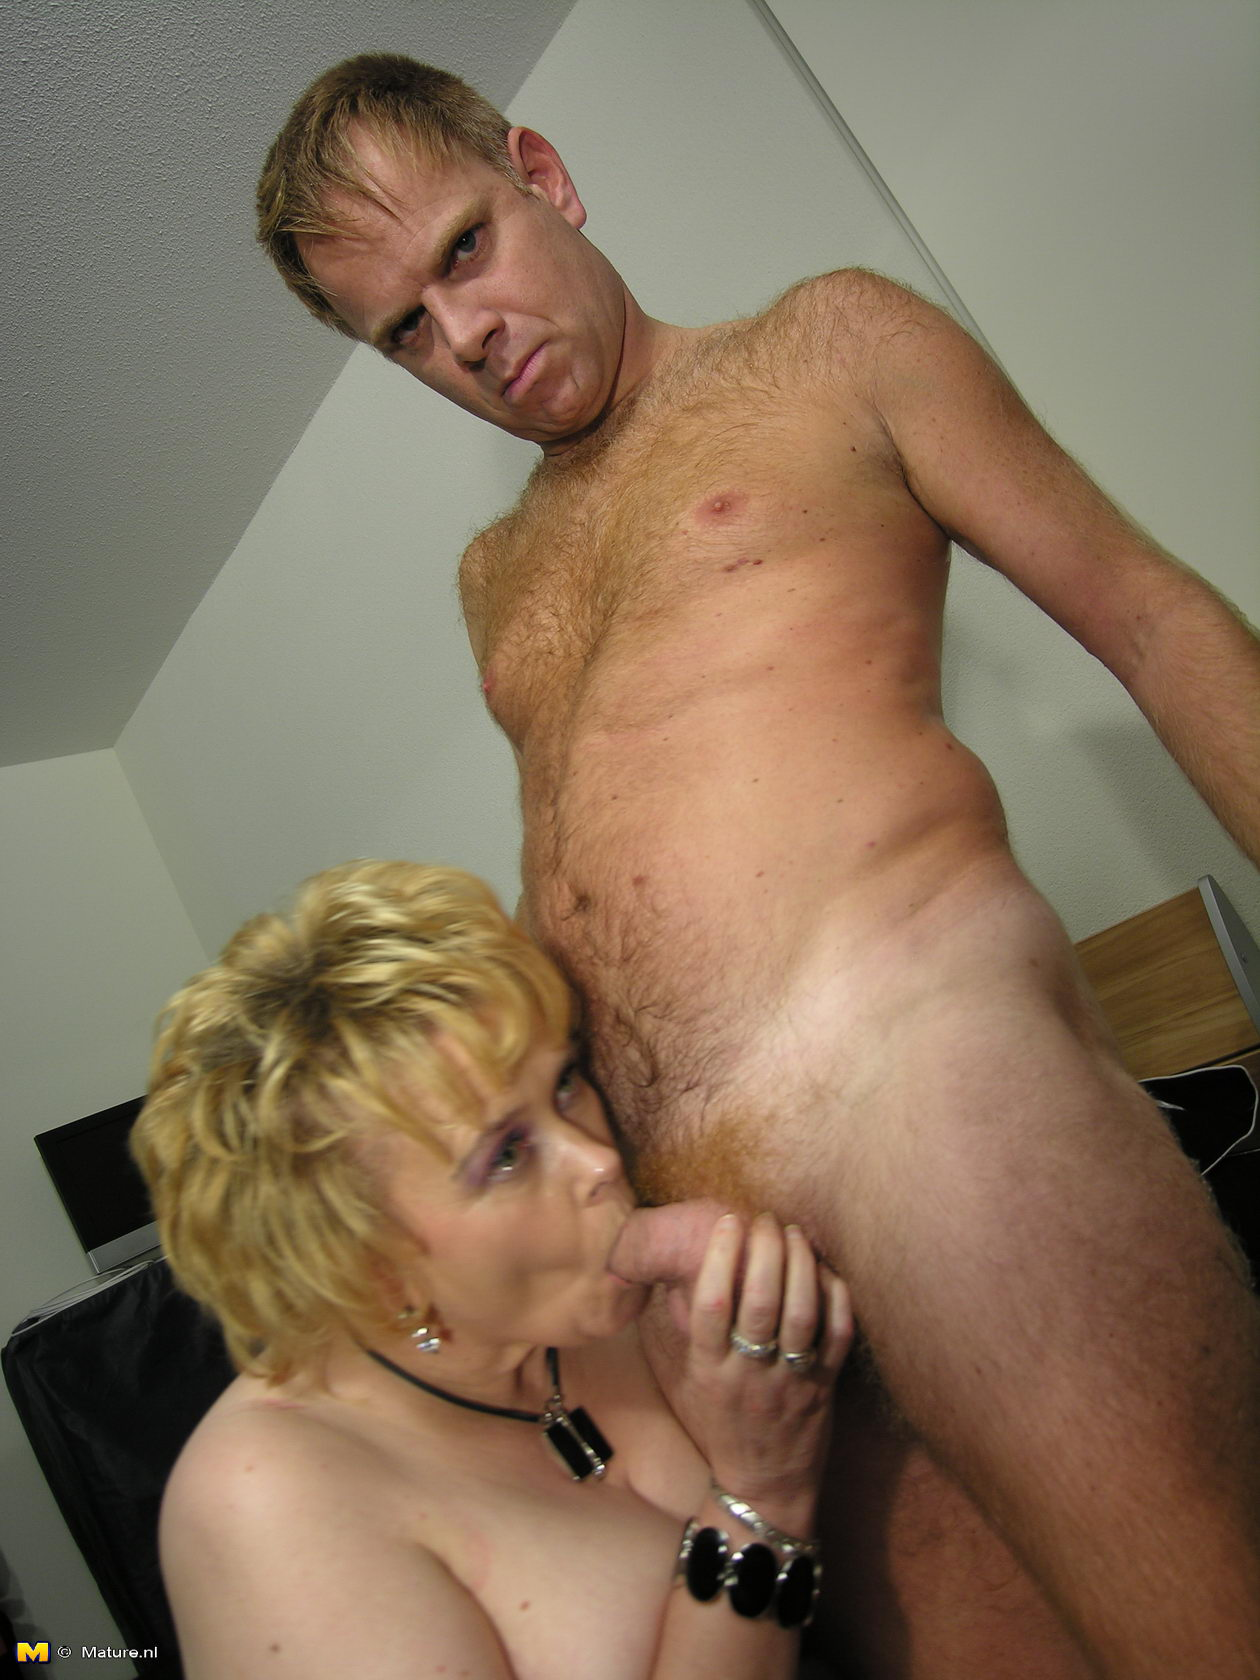 harlot blonde mature with flabby stomach blows guy??™s piston and